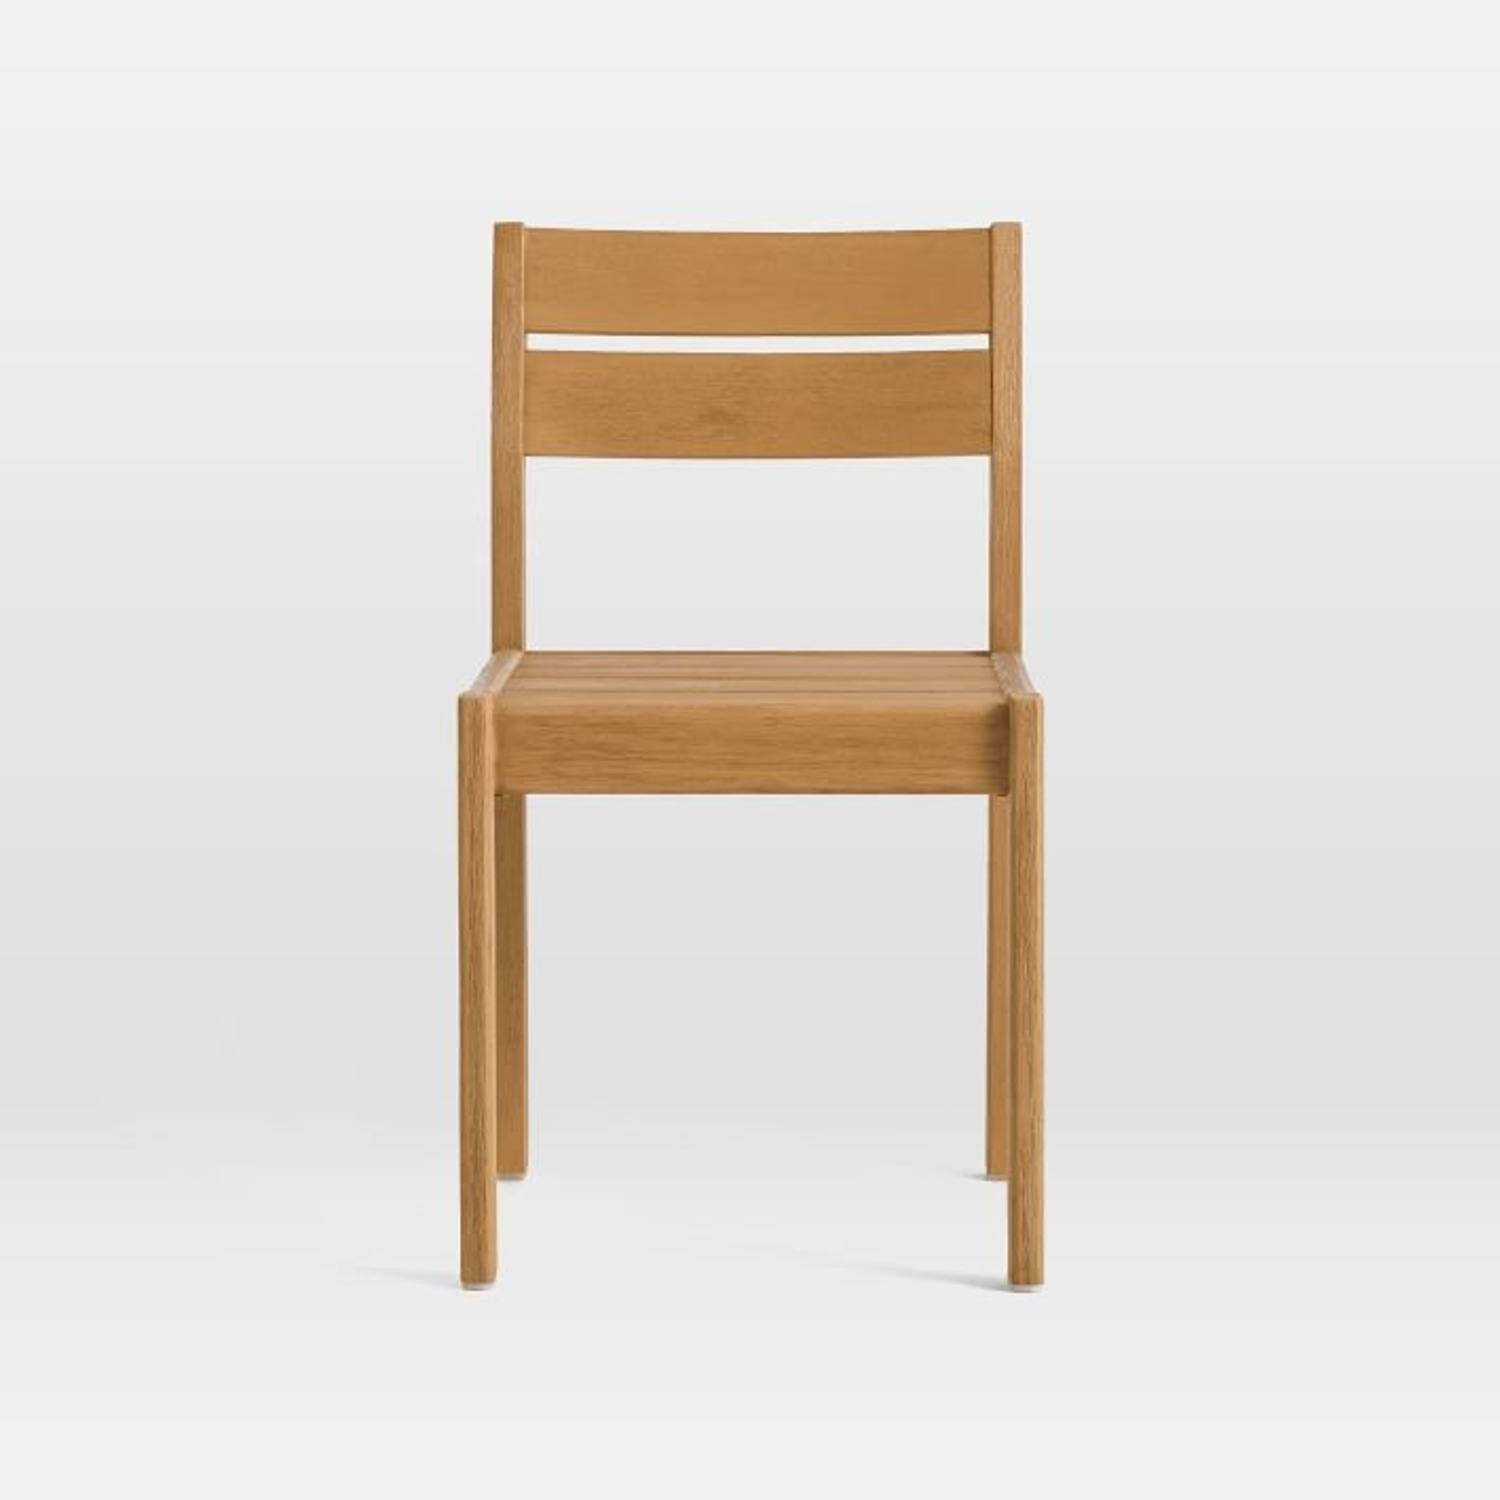 West Elm Playa Outdoor Dining Chair - image-3